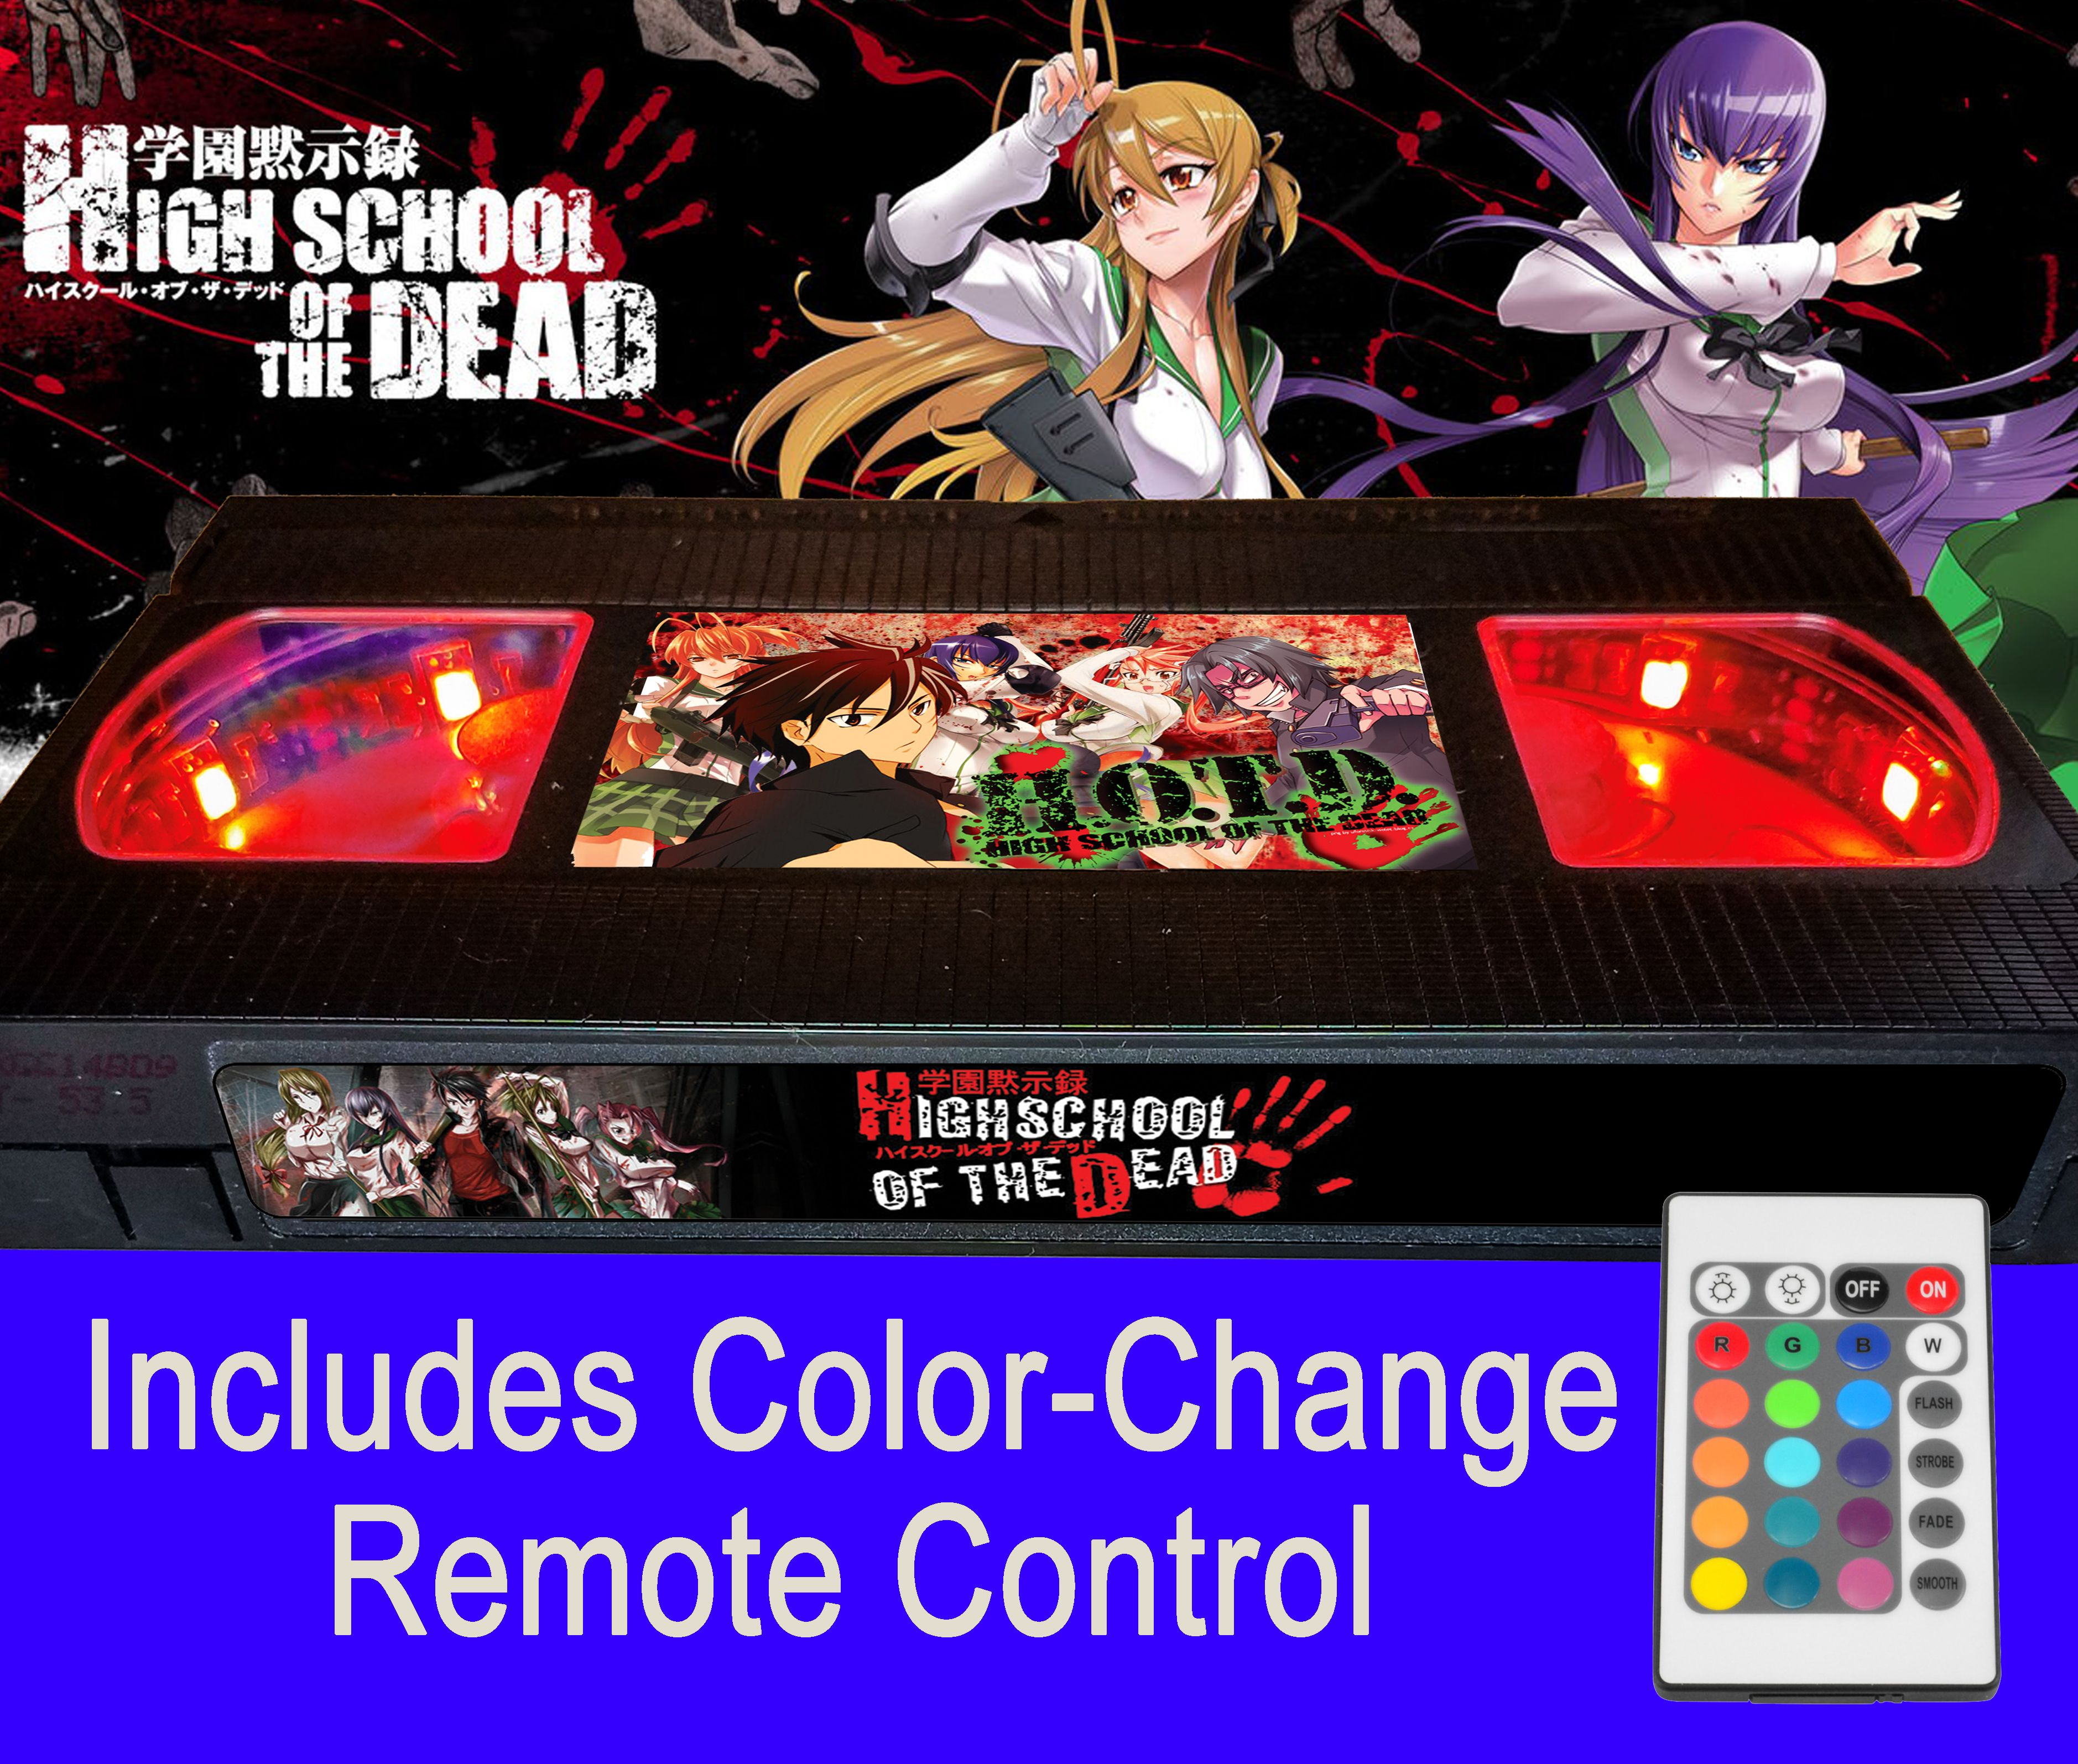 Highschool of the dead 2010 by russell from retrocraftification